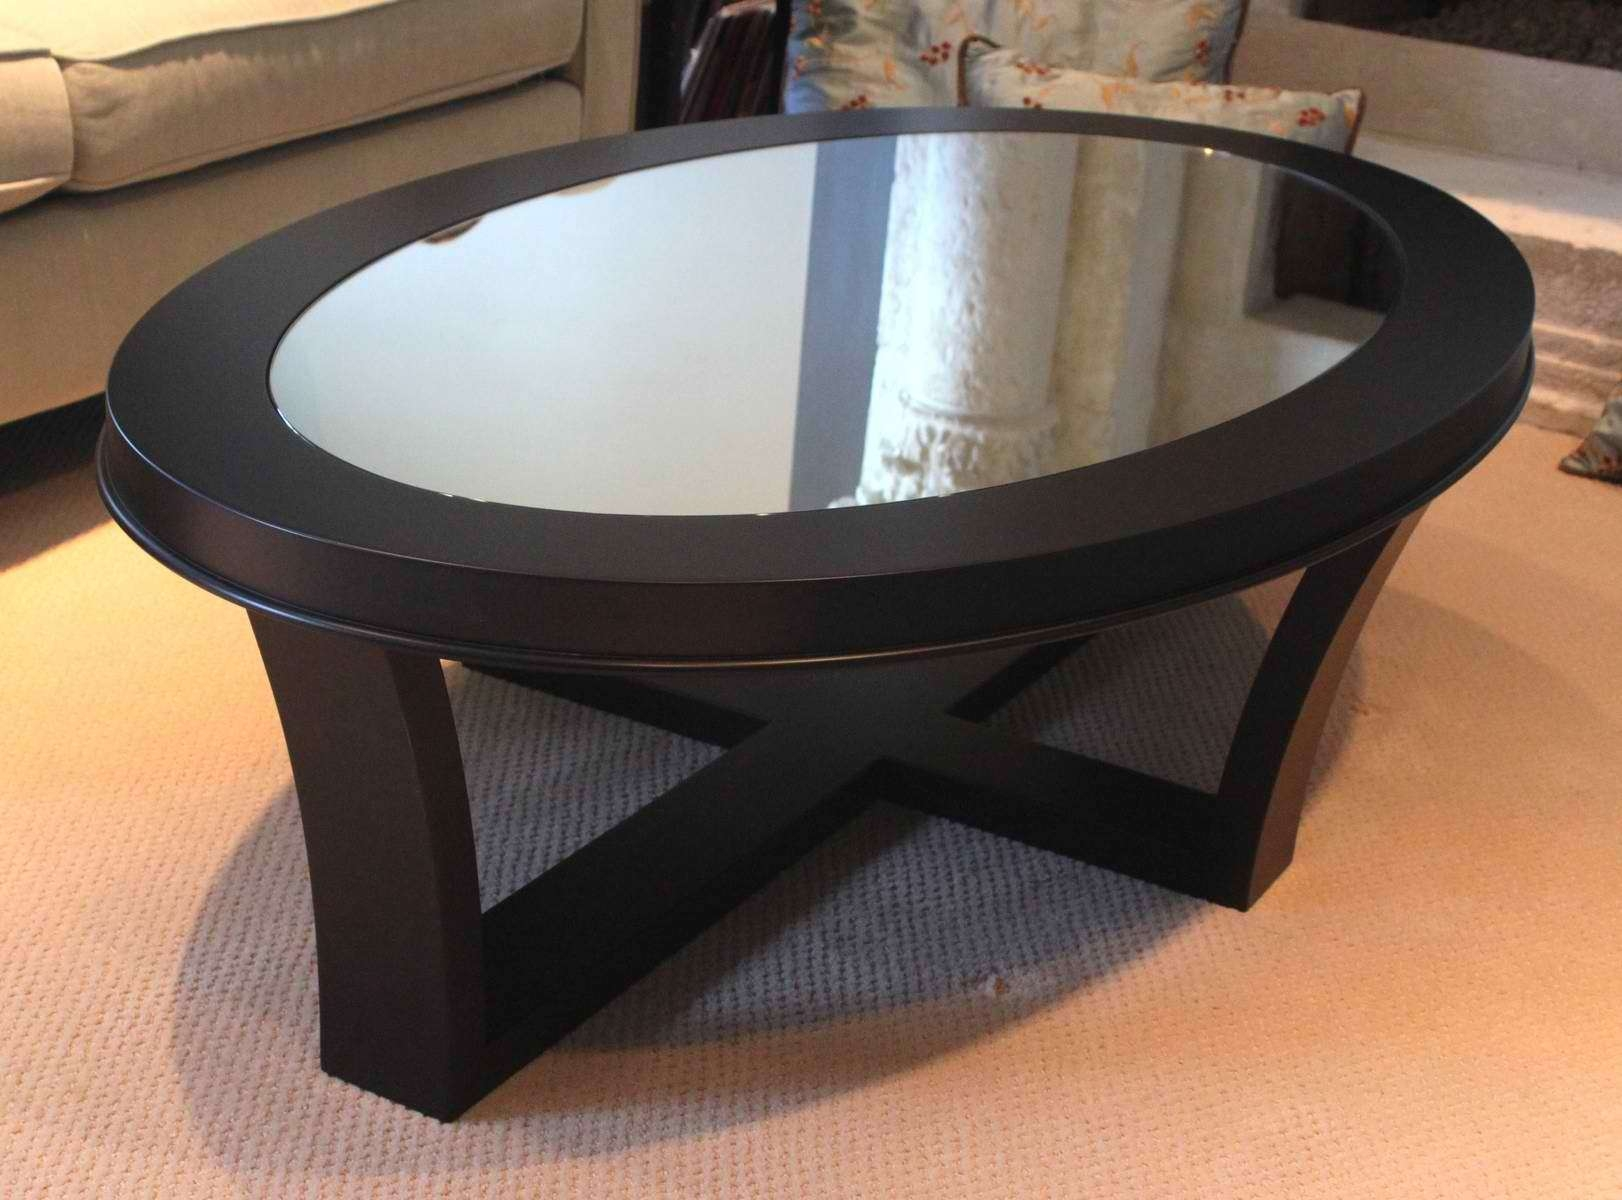 Most Recent Glass Top Storage Coffee Tables Within Coffee Tables : Mesmerizing Antique And Minimalist Oval Coffee (View 13 of 20)